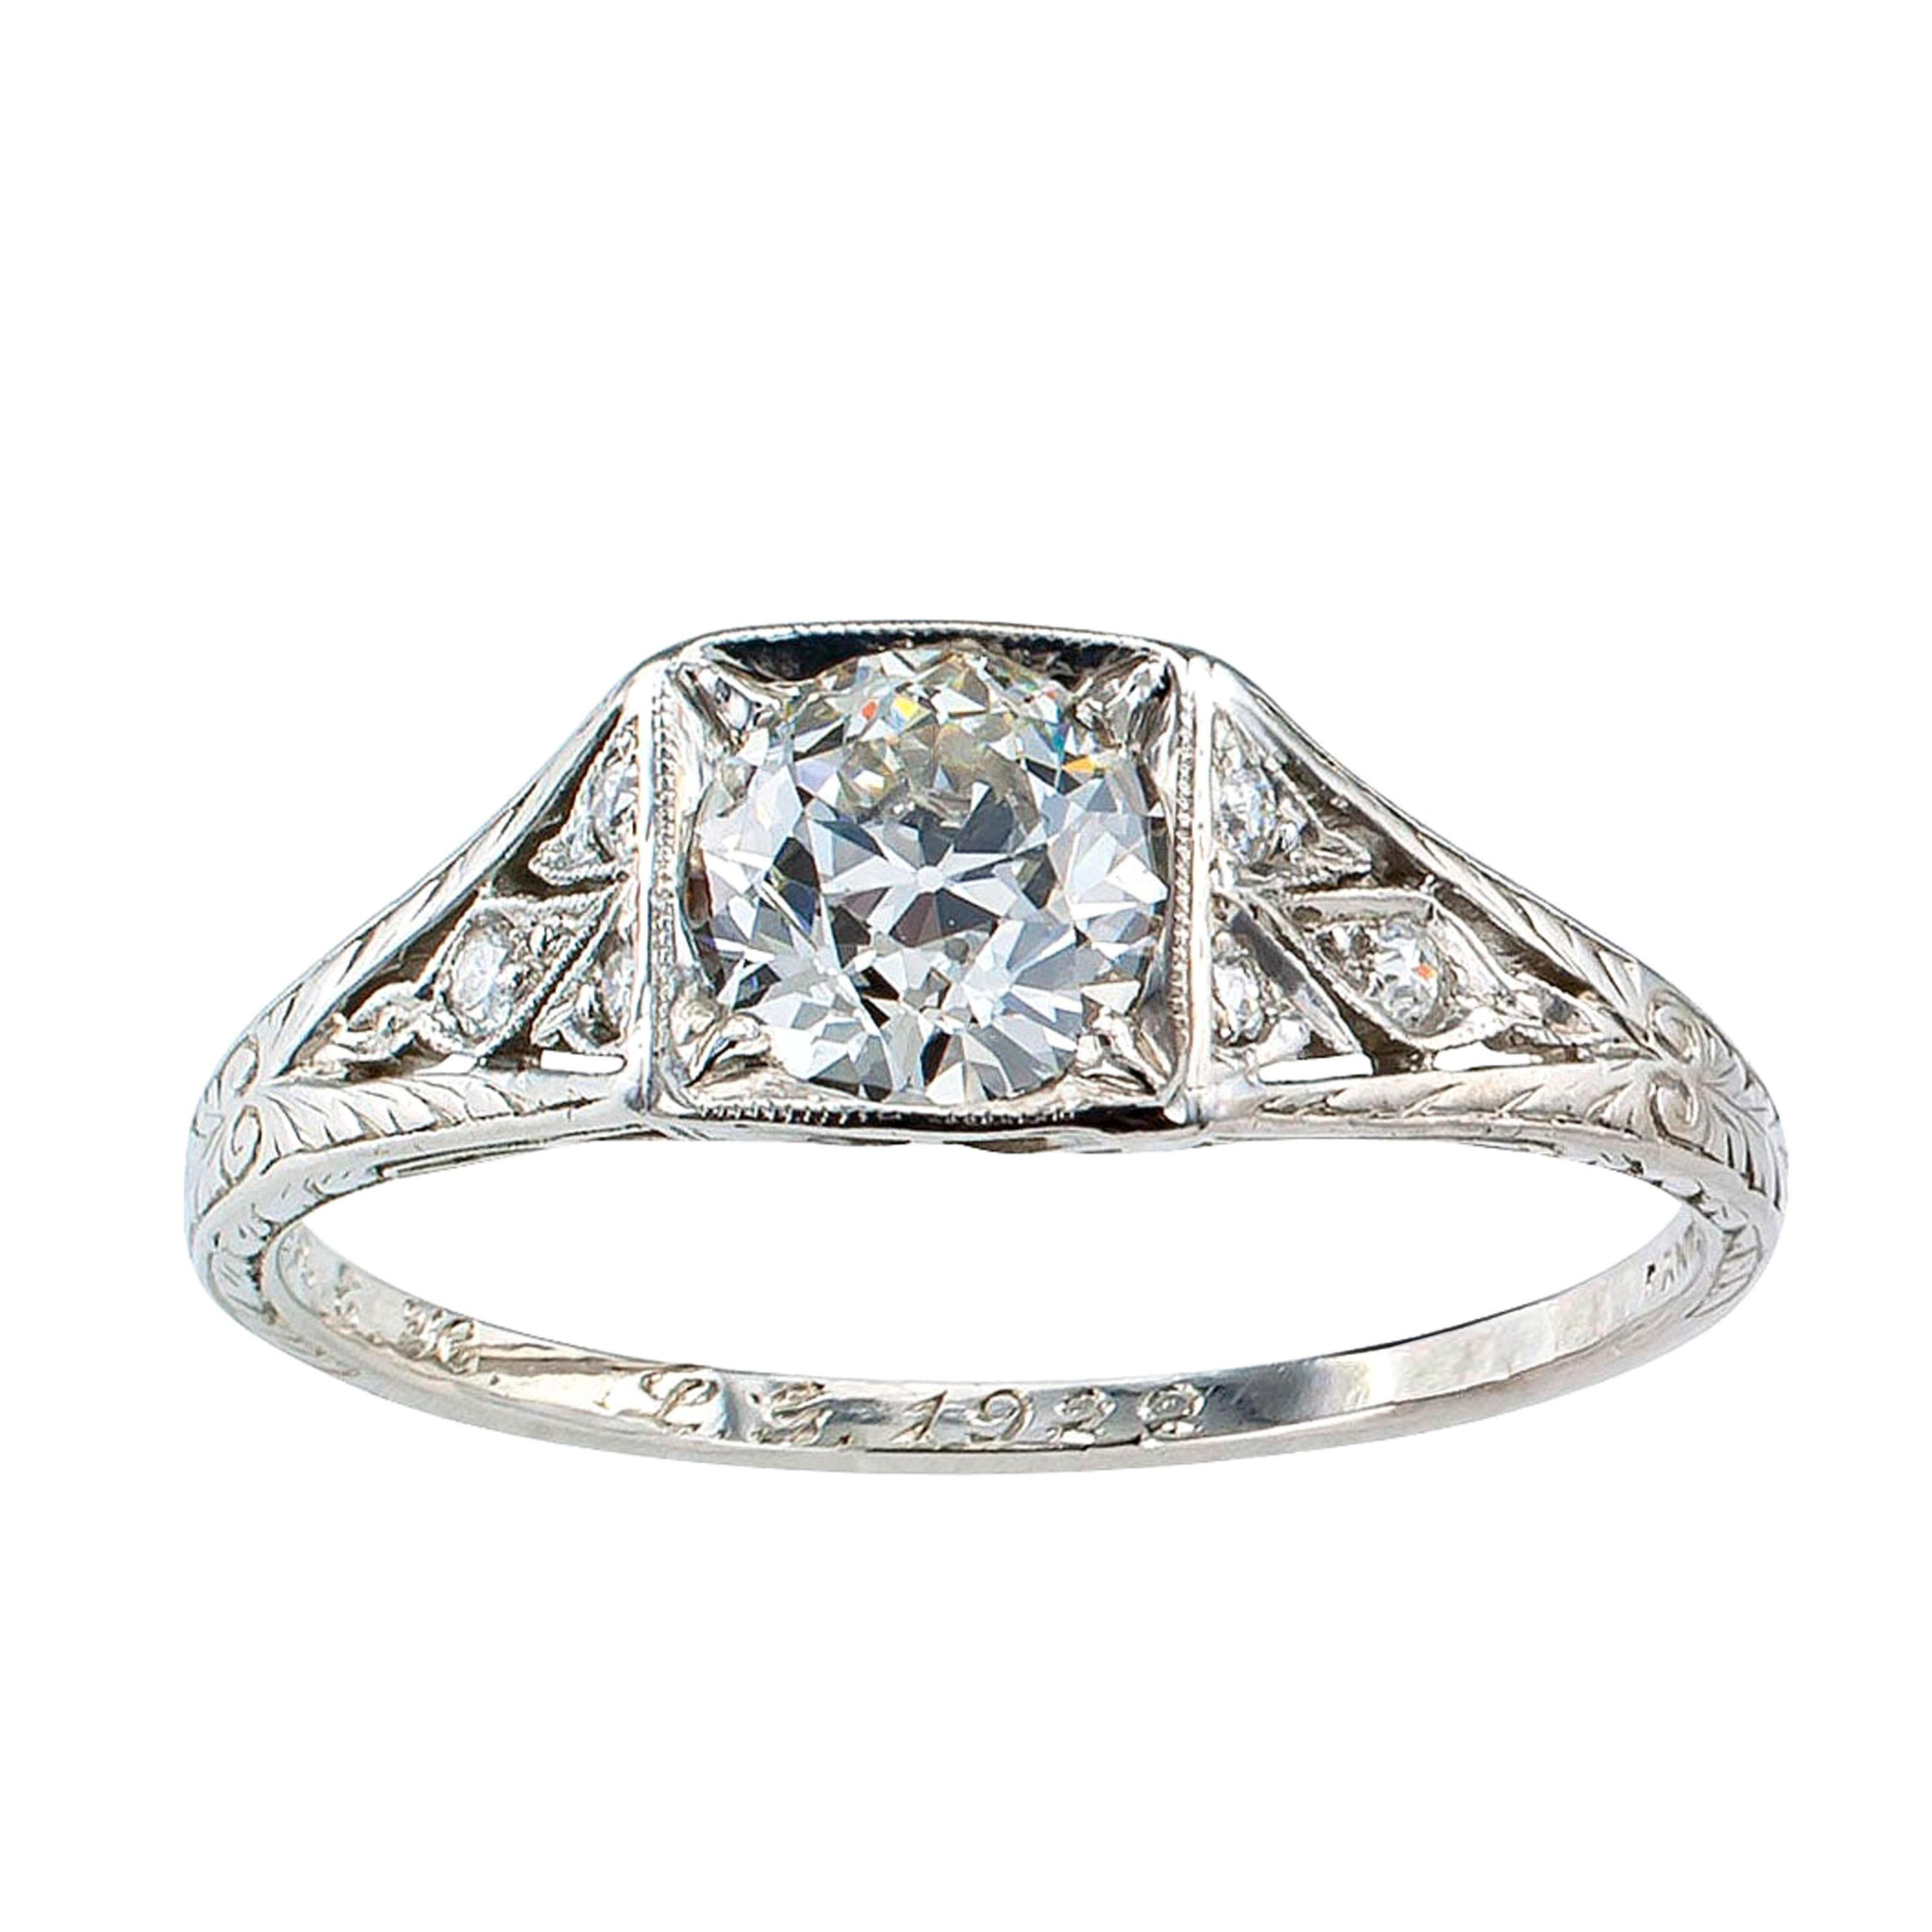 89d65bf5ef78be Antique and Vintage Rings and Diamond Rings For Sale at 1stdibs